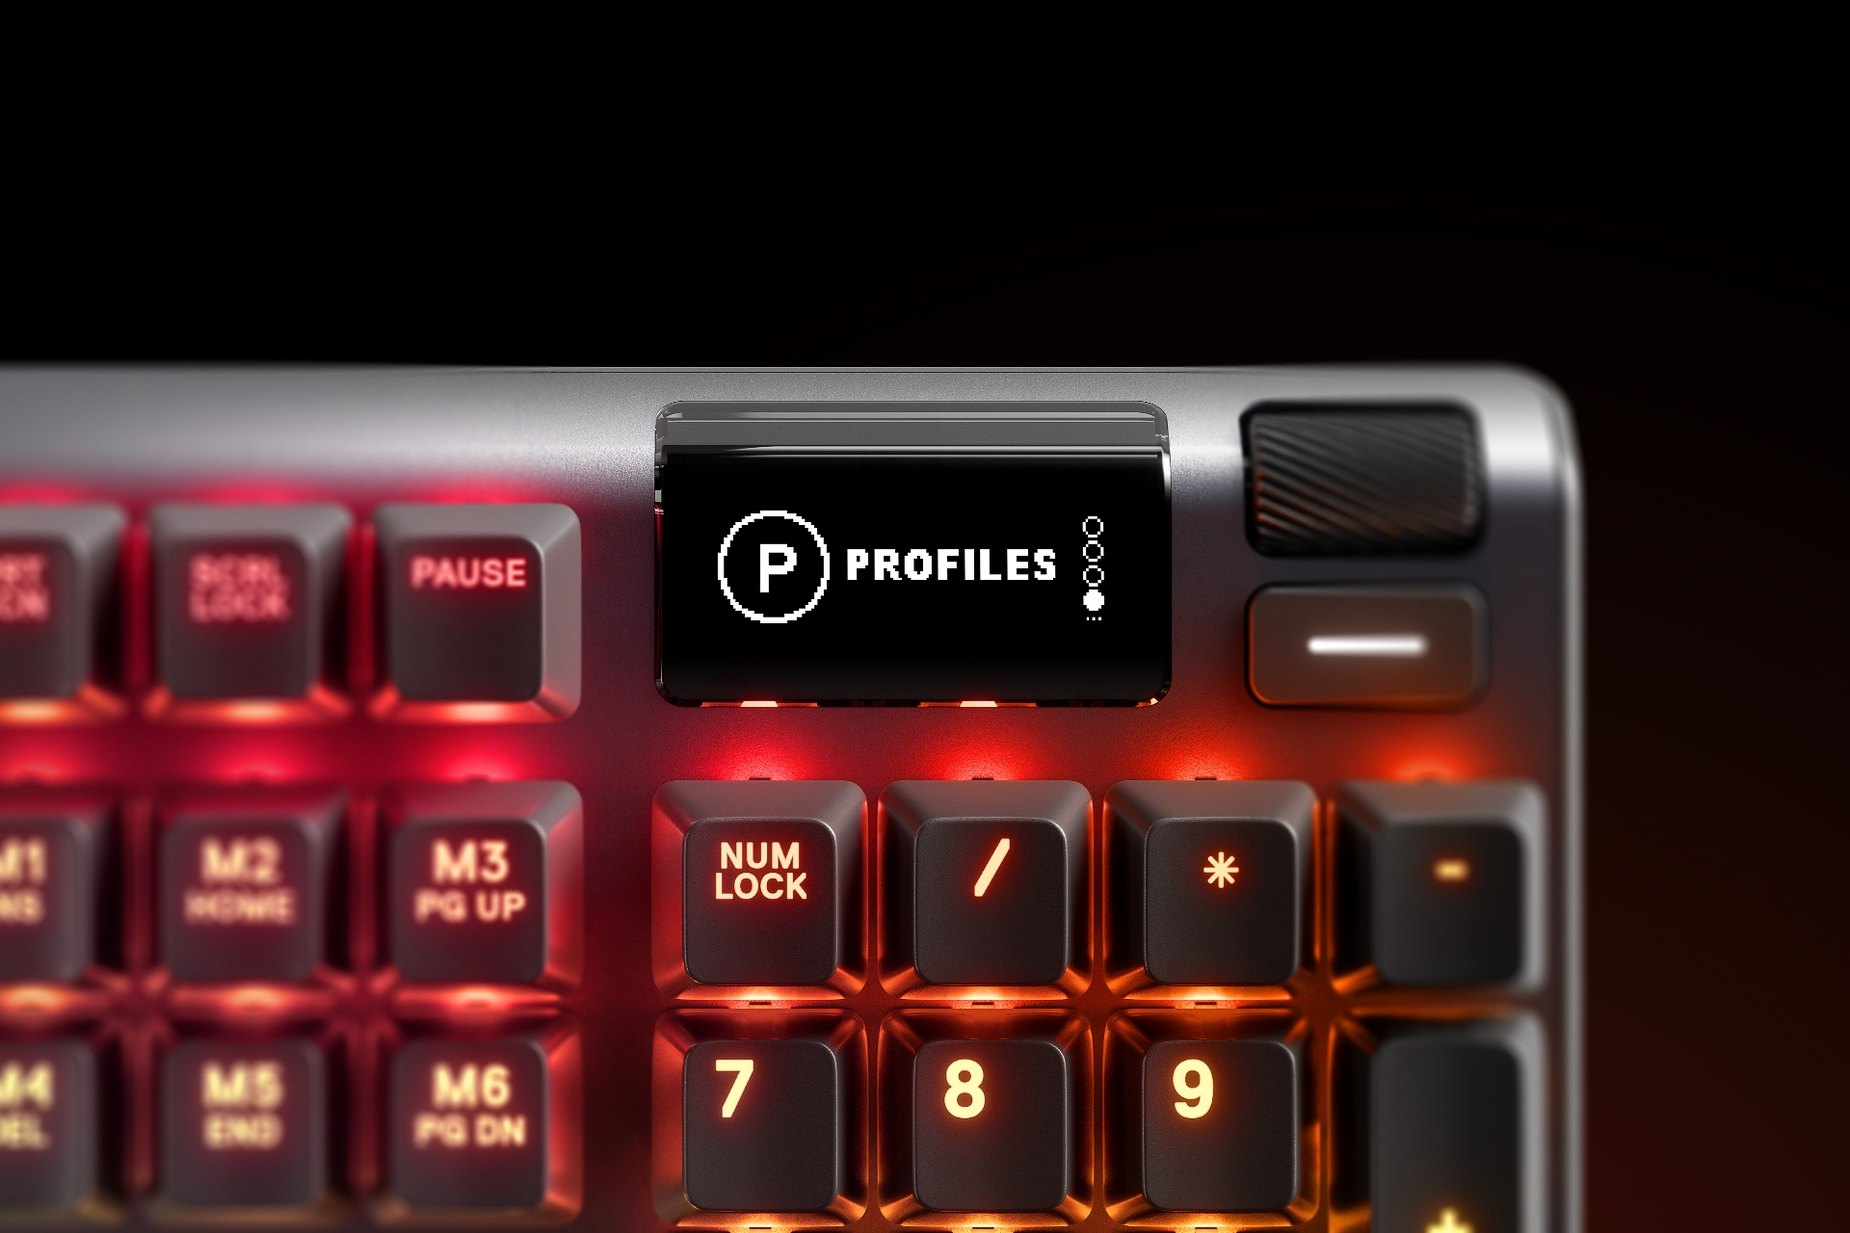 Zoomed in view of the multimedia and settings controls/volume roller on the Nordic - Apex 7 (Brown Switch) gaming keyboard